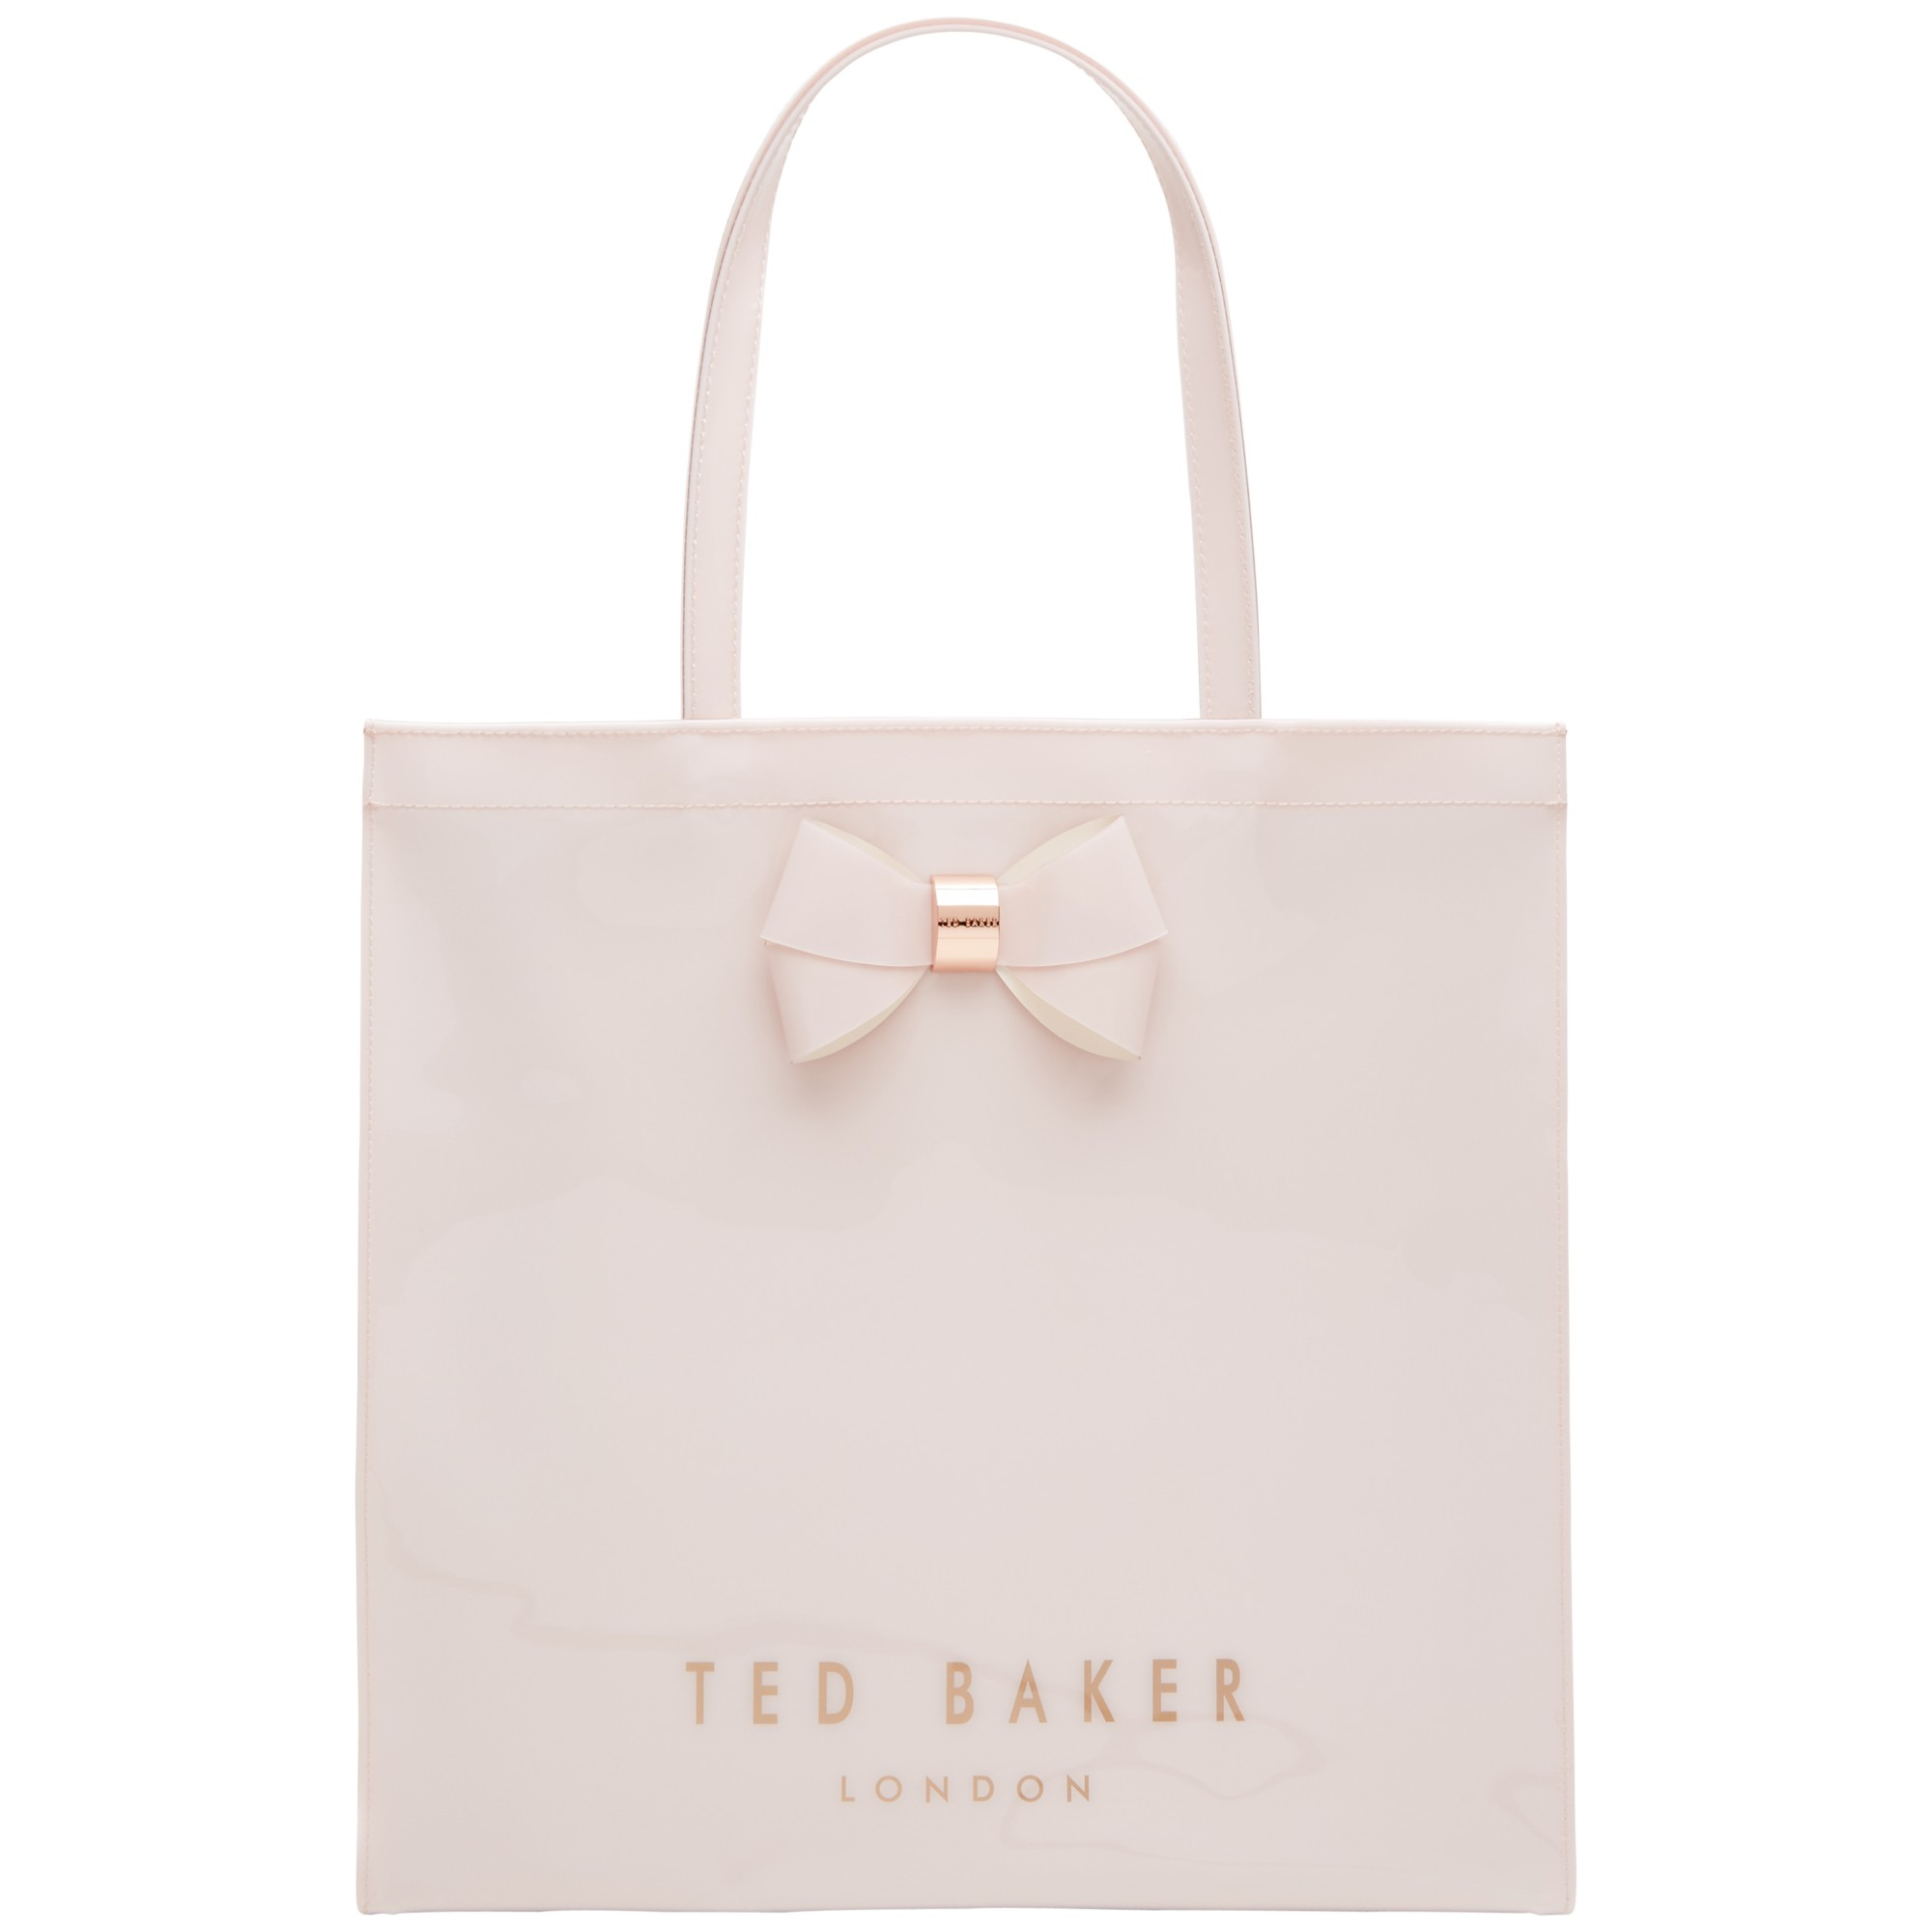 Serenity Large Icon Bag Ted Baker PDfnpIowkS